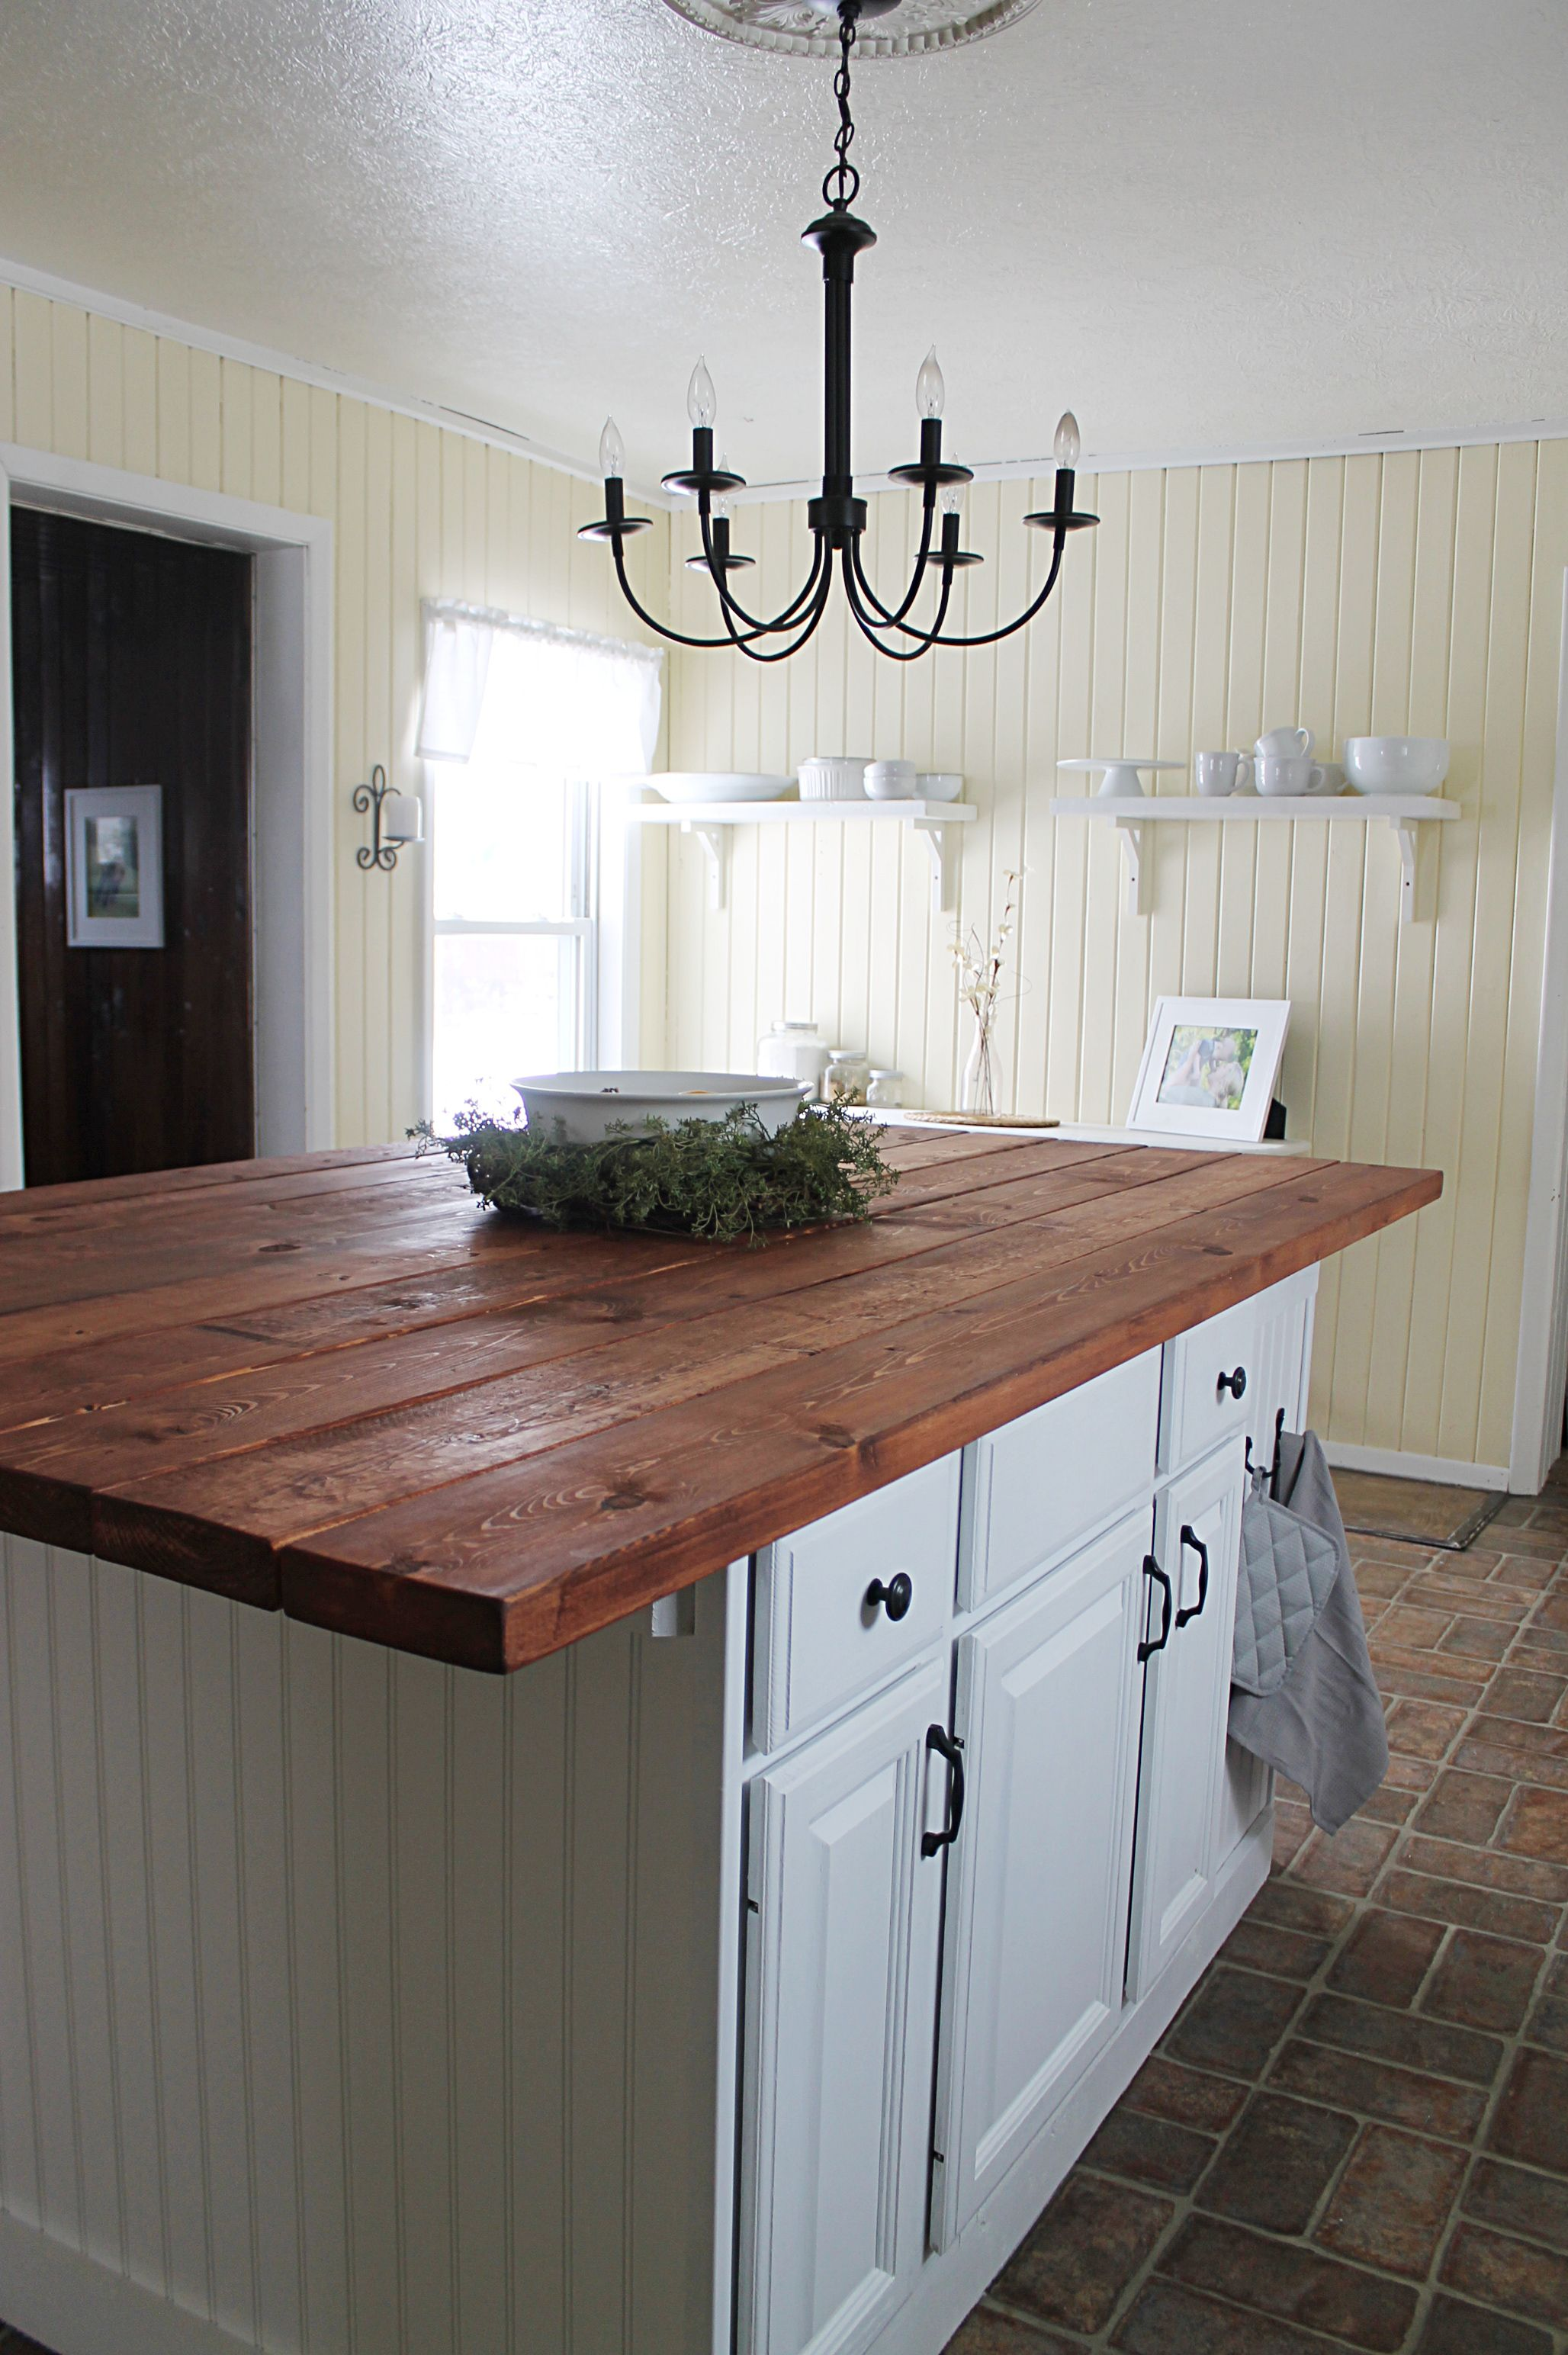 Farmhouse Kitchen Island made from salvaged